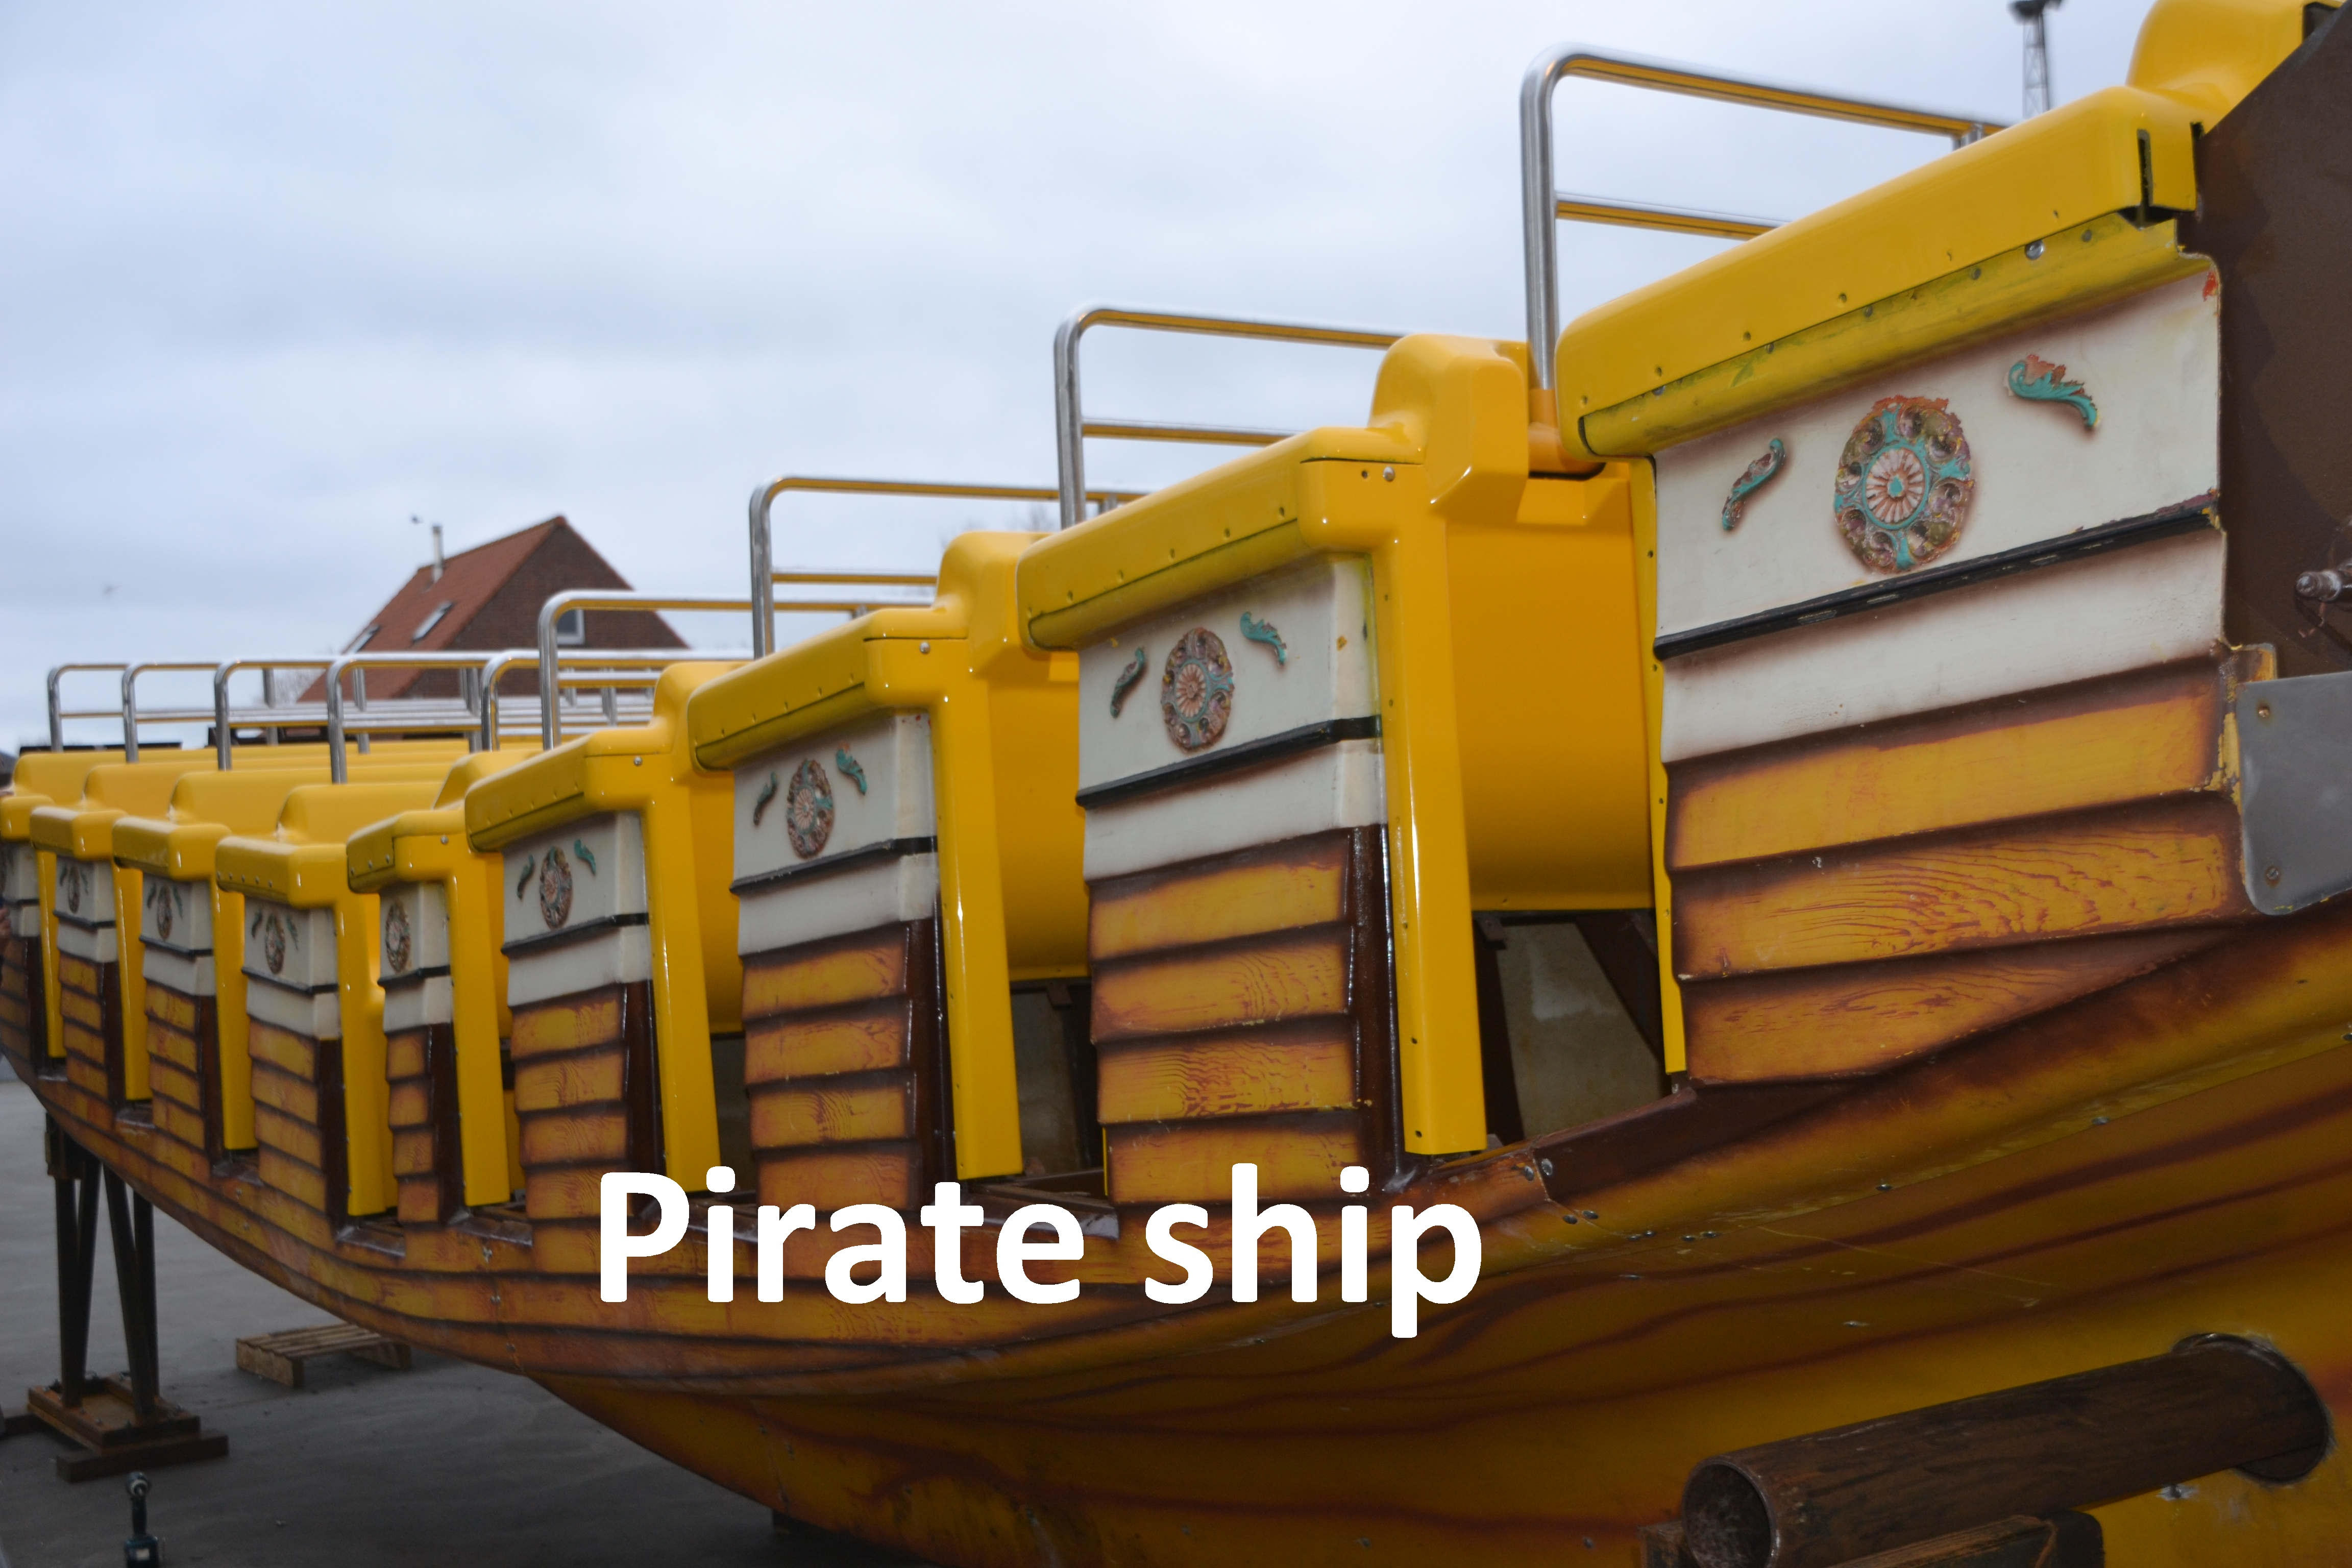 picture of pirate ship, pirate boat, themepark, roller coaster, family park, theme area, theming, props, sculptures, themed environments, entertainment, amusement parks, stand building, playgrounds, creative constructions, thematic eye-catchers,recreational area, Coating of figures,thematic elements, stages, props in fiberglass